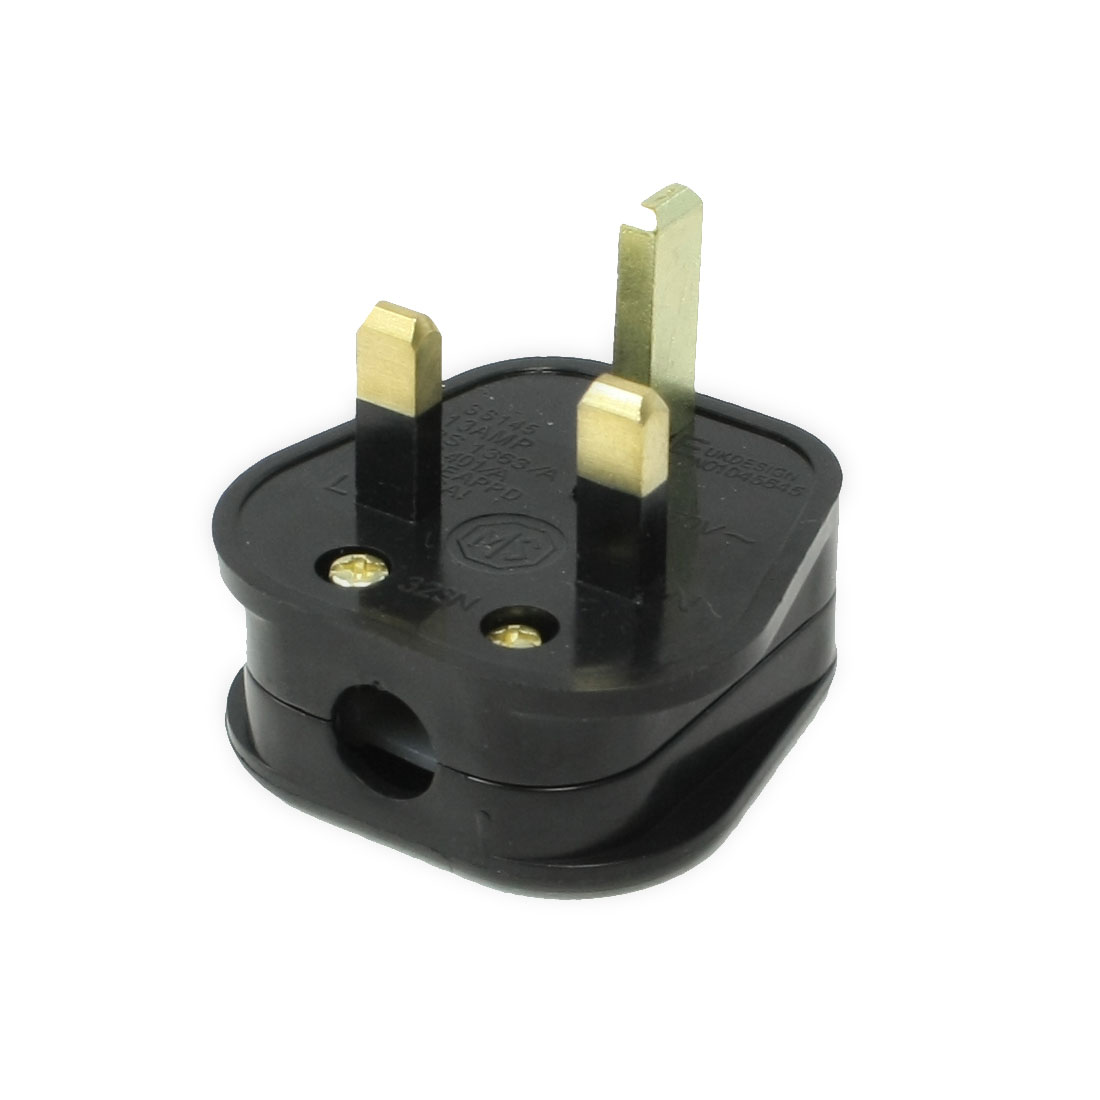 AC 250V 13A 3 Pin UK Type Rewirable Power Plug Black Trapezoid Connector Head